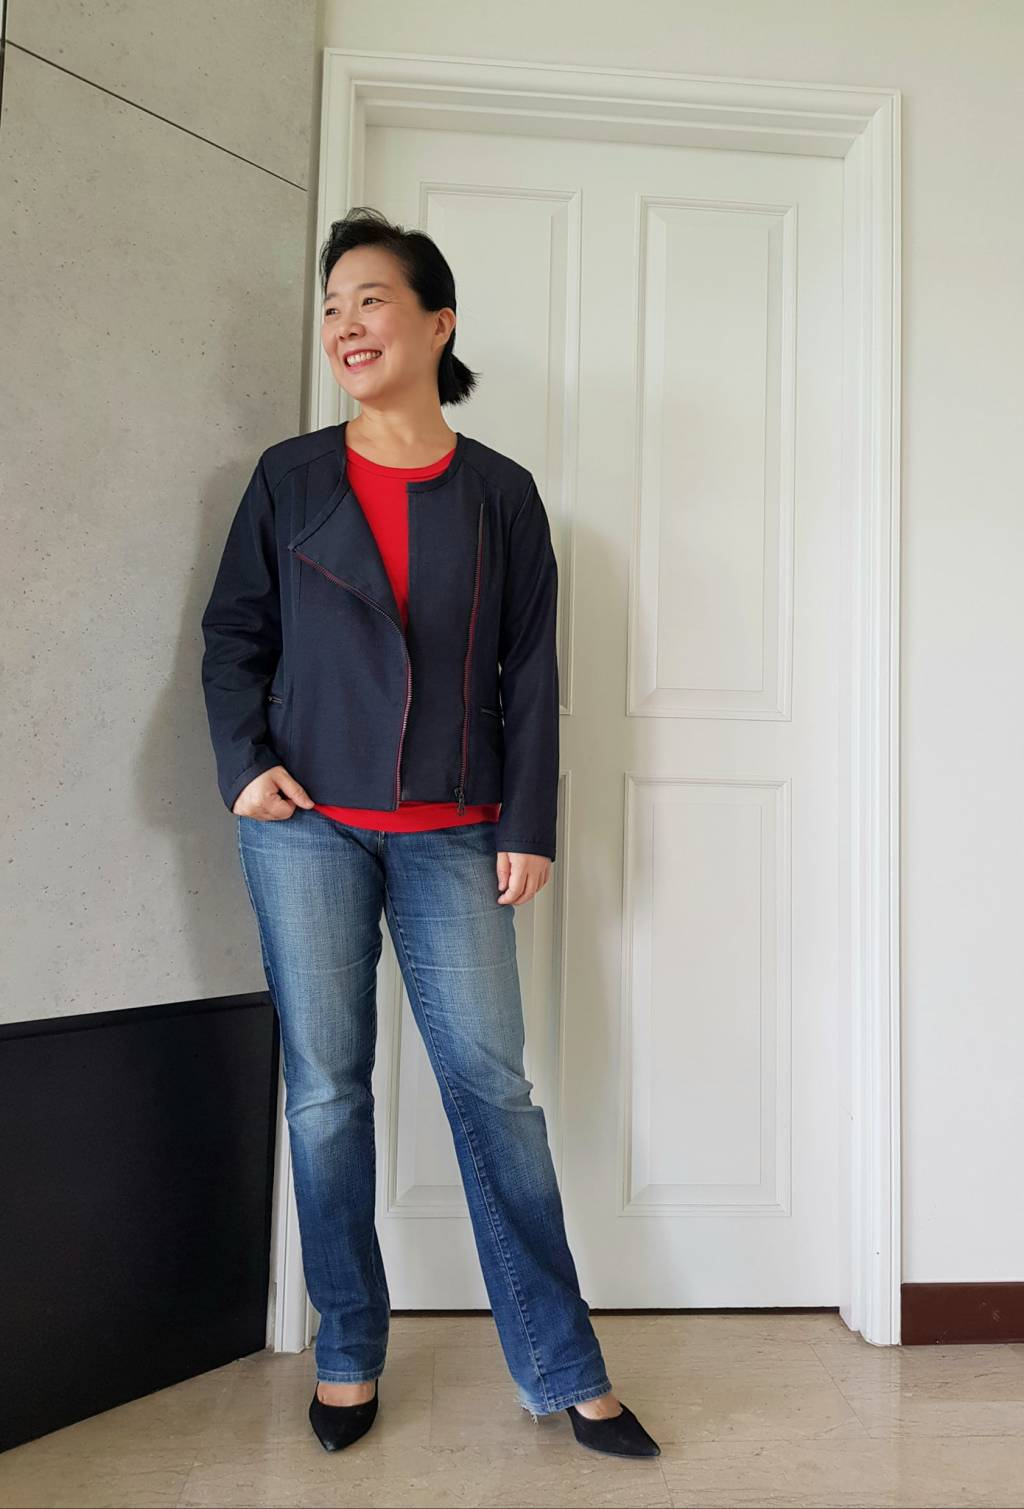 Jump pleat on Itch to Stitch Cerro Alto Jacket Sewing Pattern